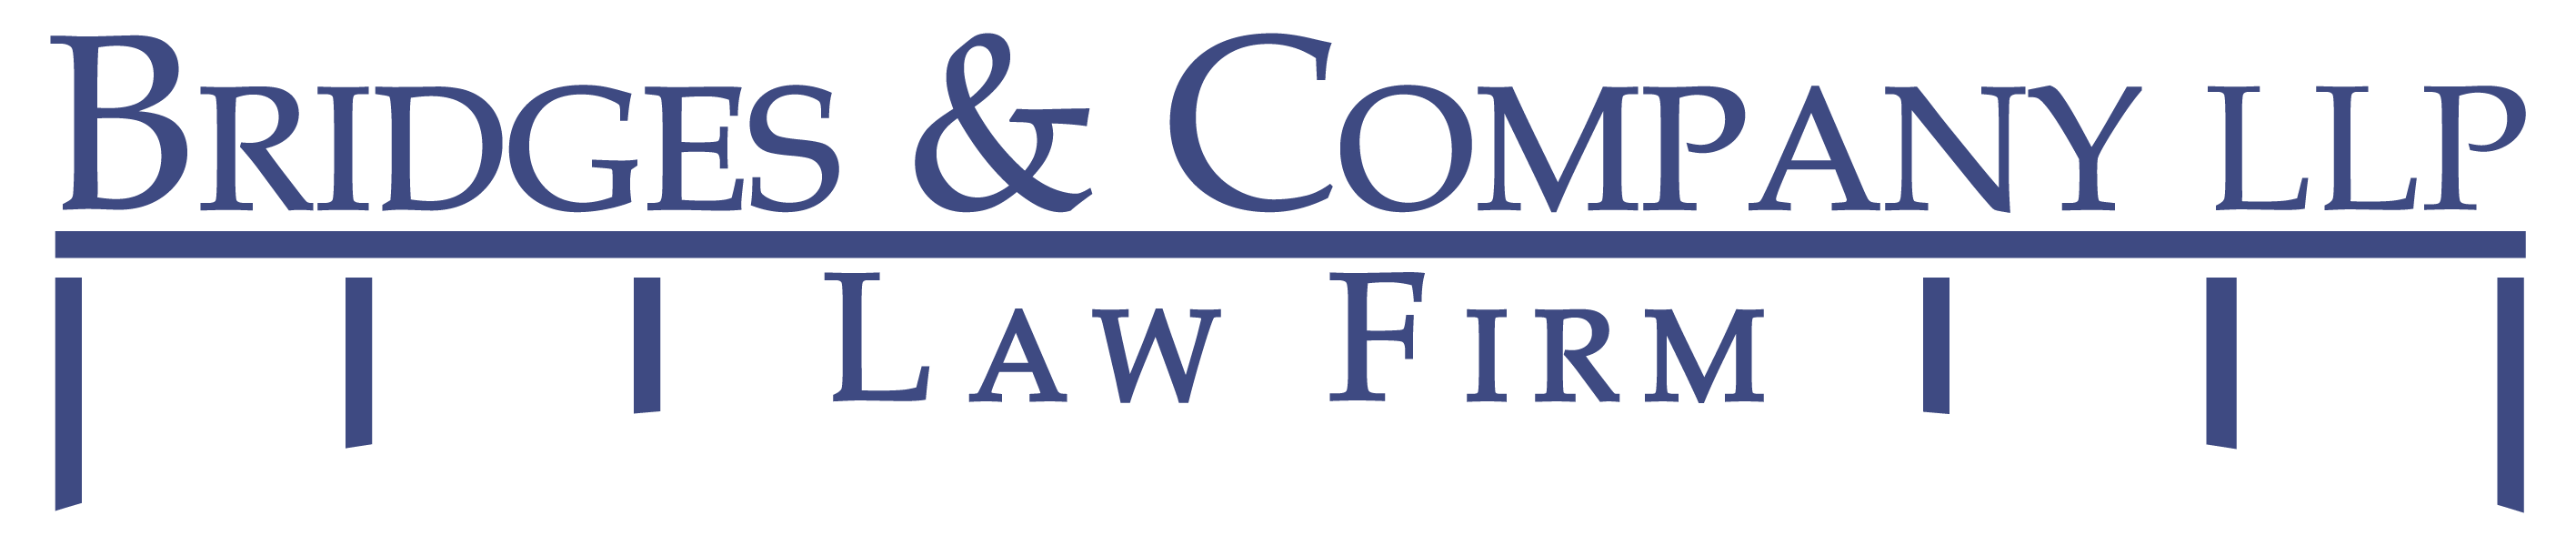 Bridges and Company LLP